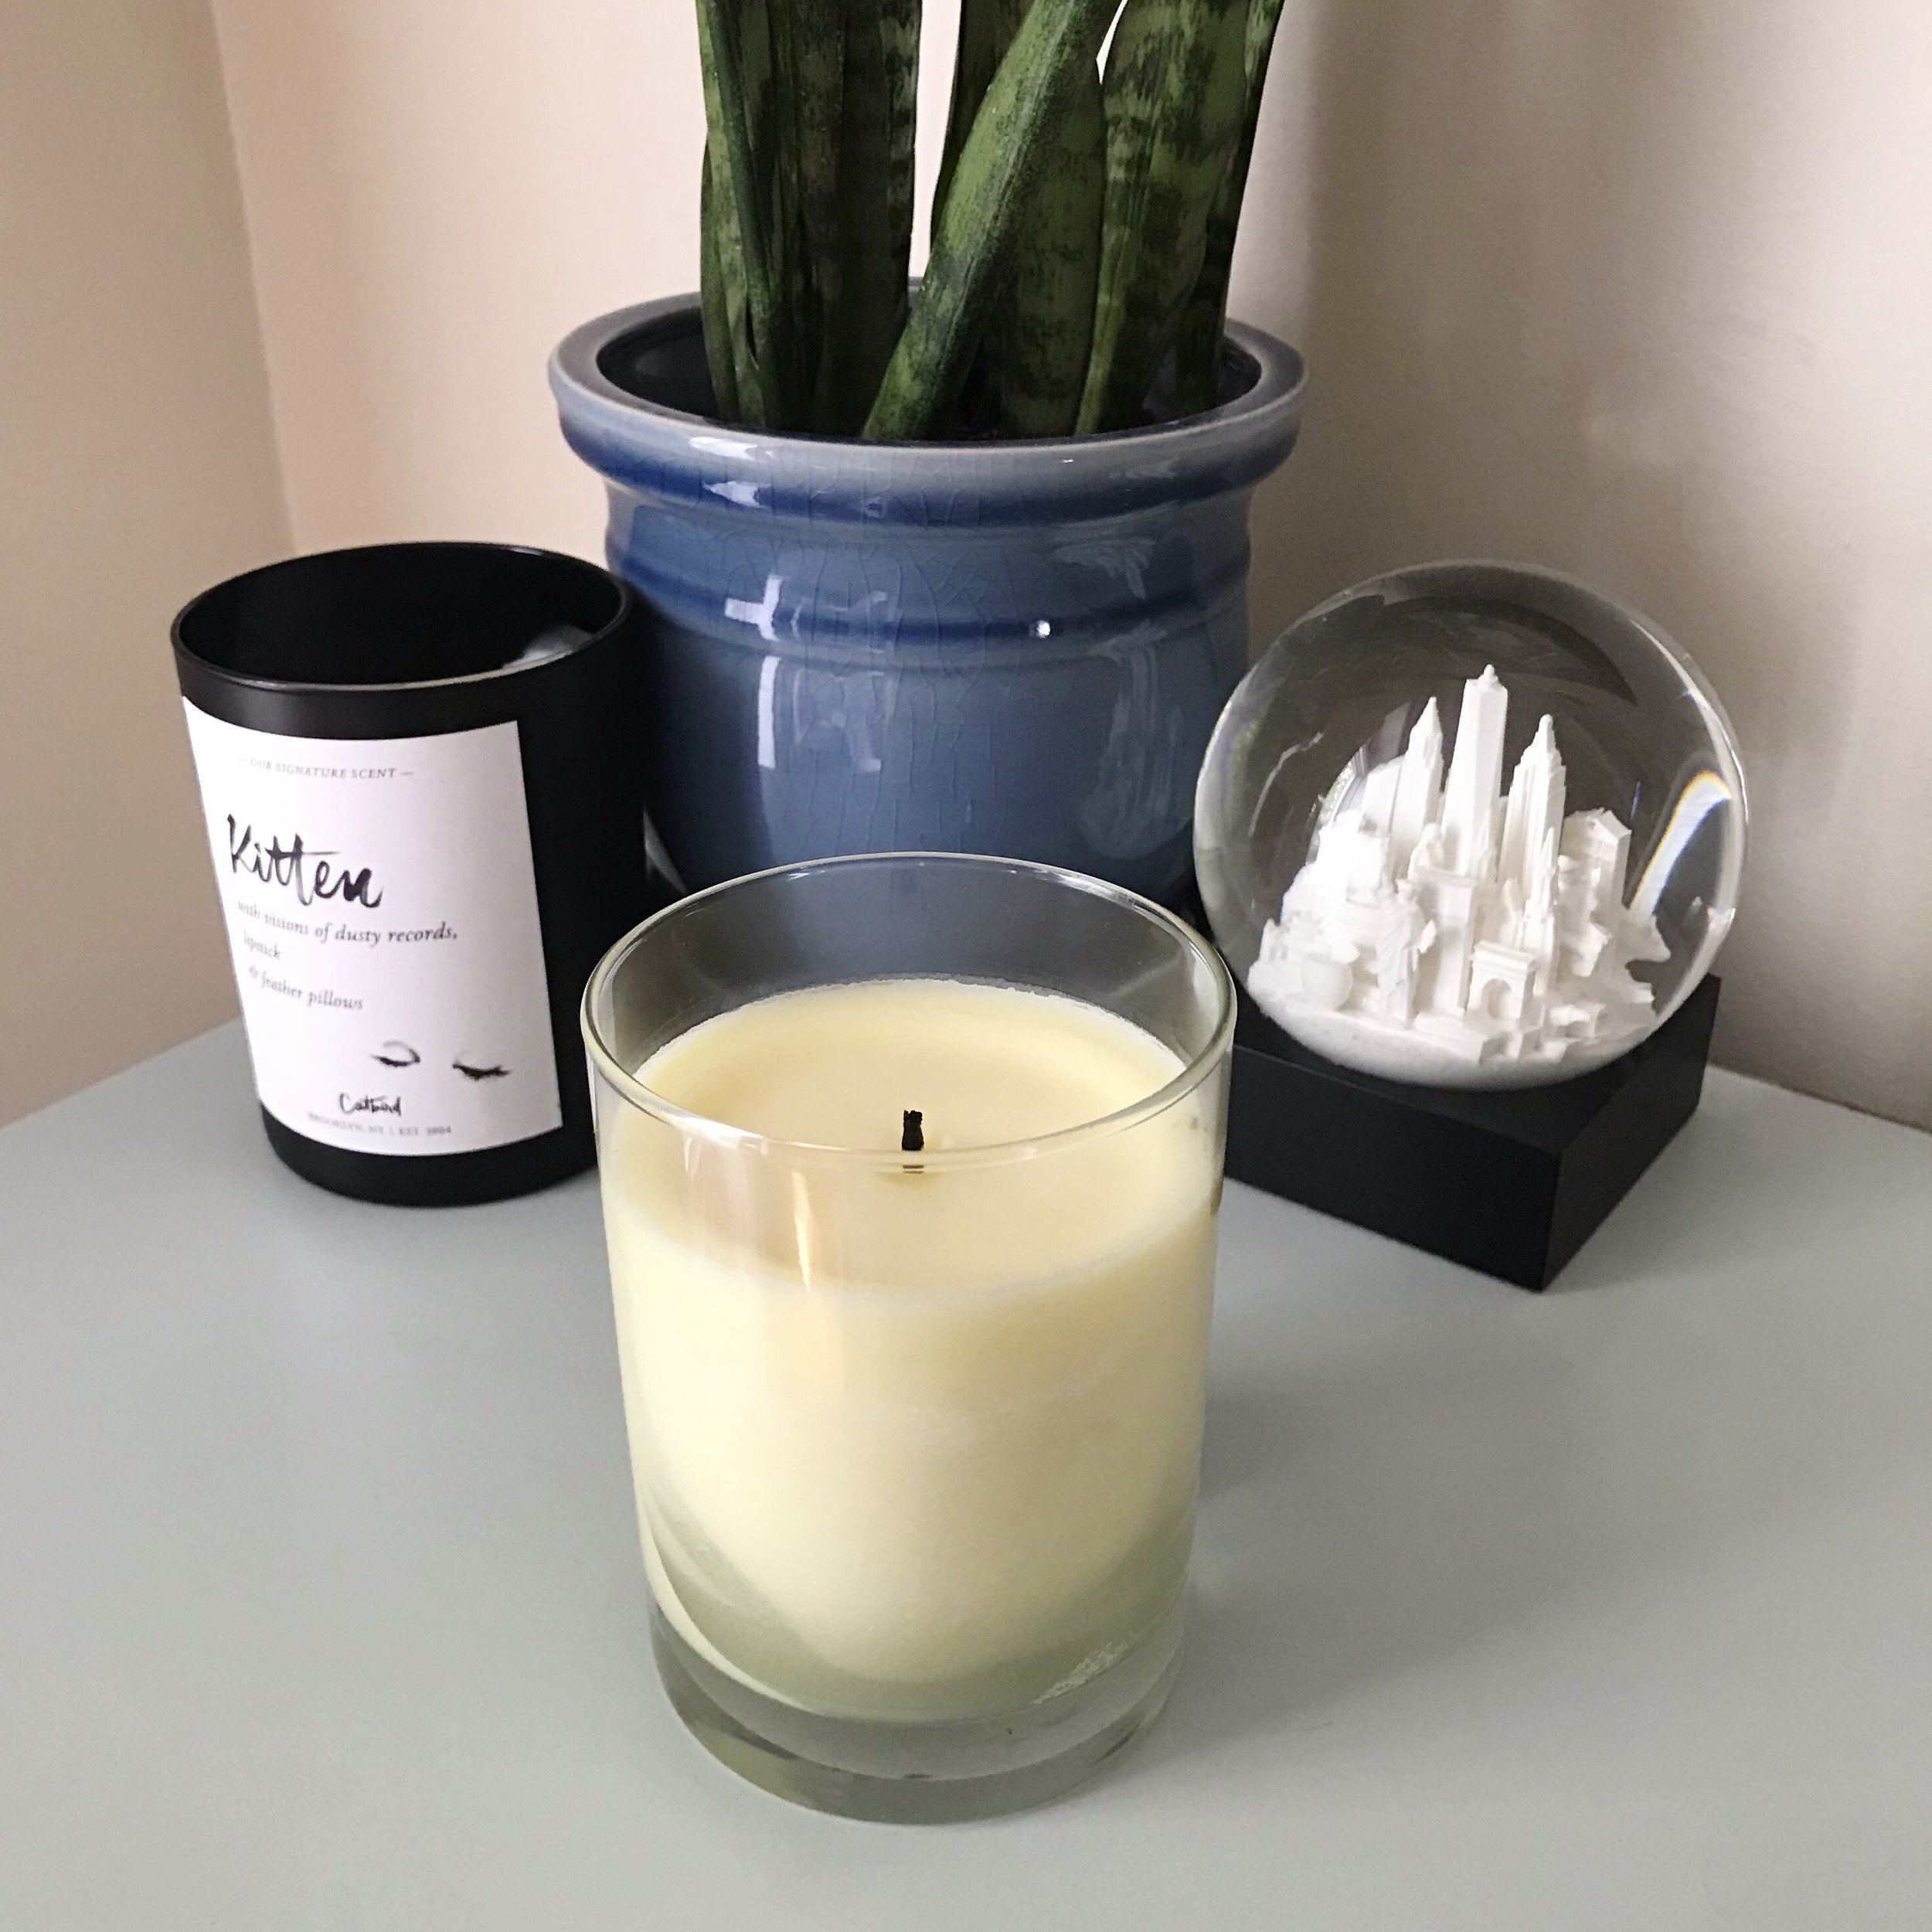 lemon candle.jpg